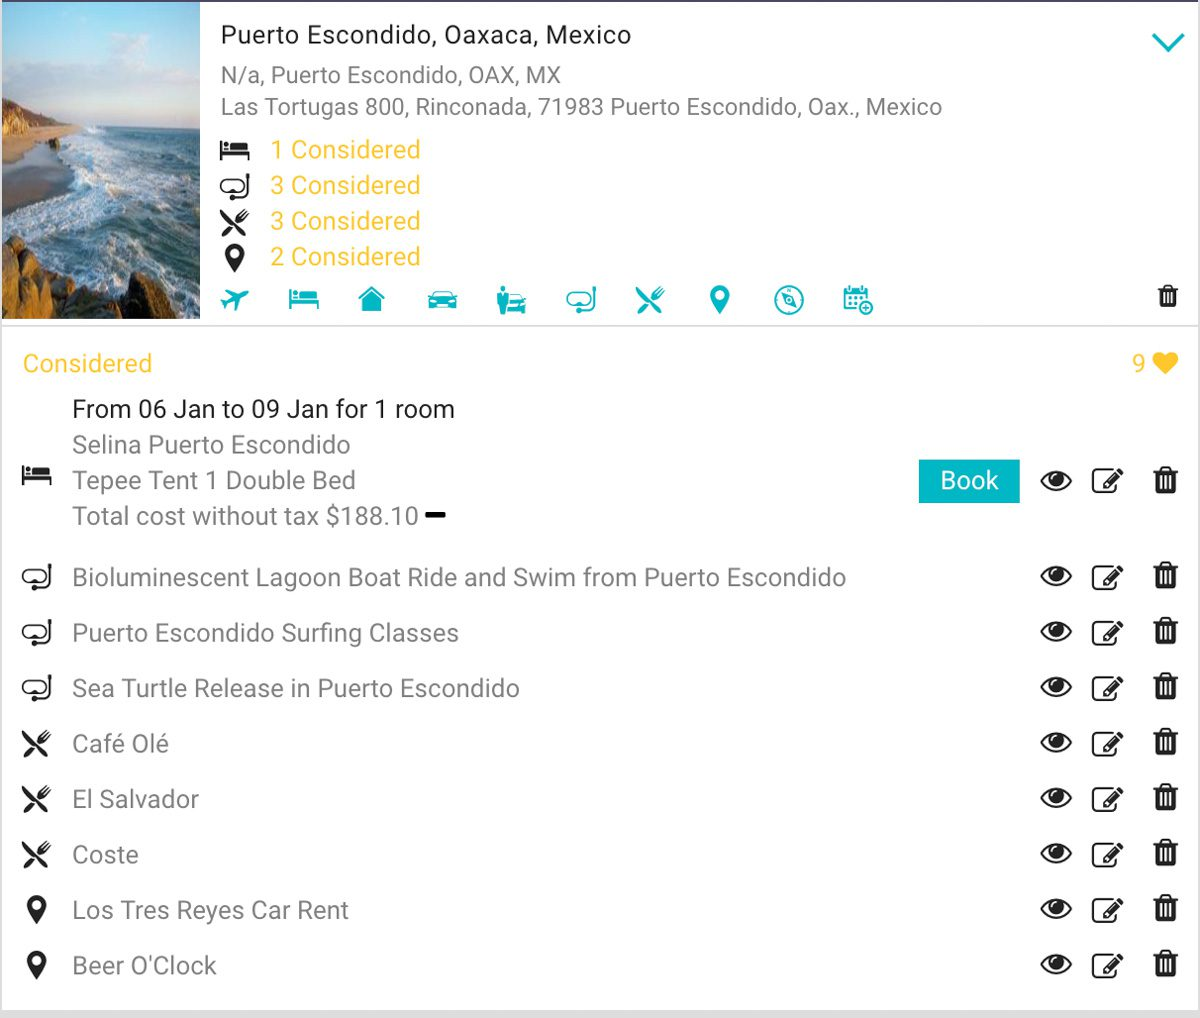 considered options relovate trip planning toolLR